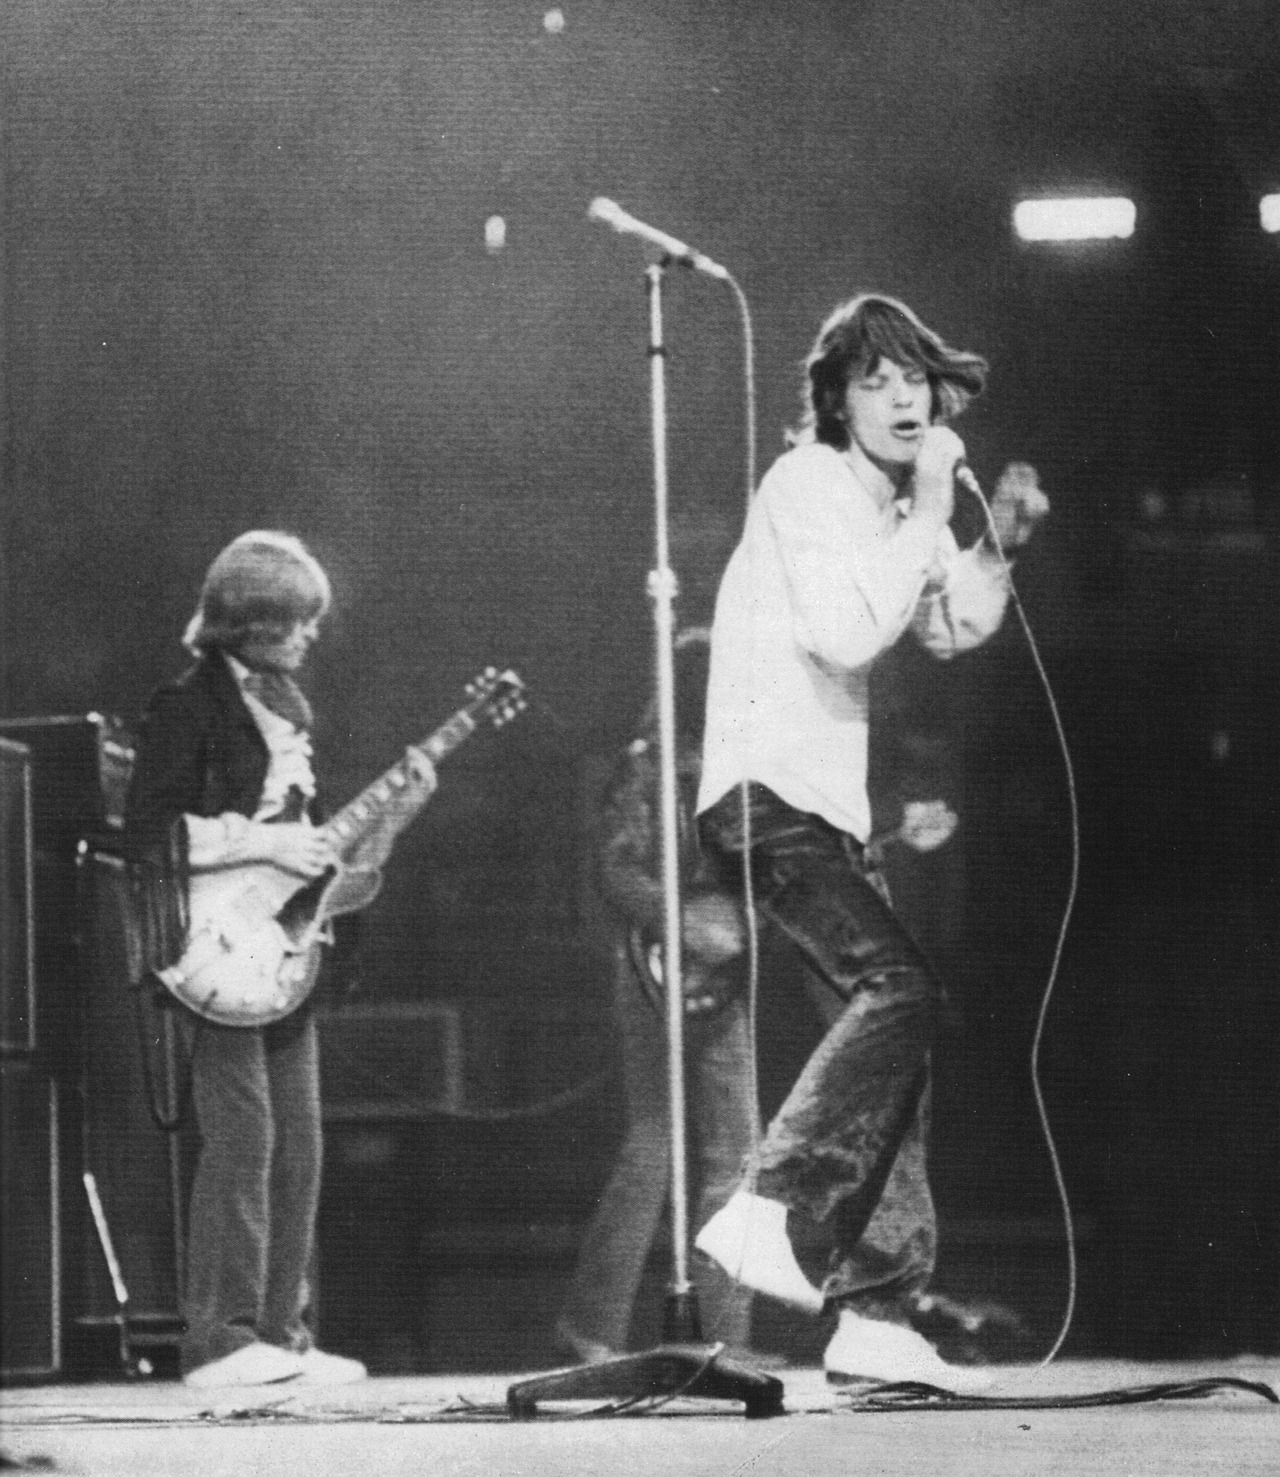 BRIAN JONES et MICK JAGGER (1968)    The Stones during a surprise performance at the NME (New Musical Express) Awards, May 12, 1968.